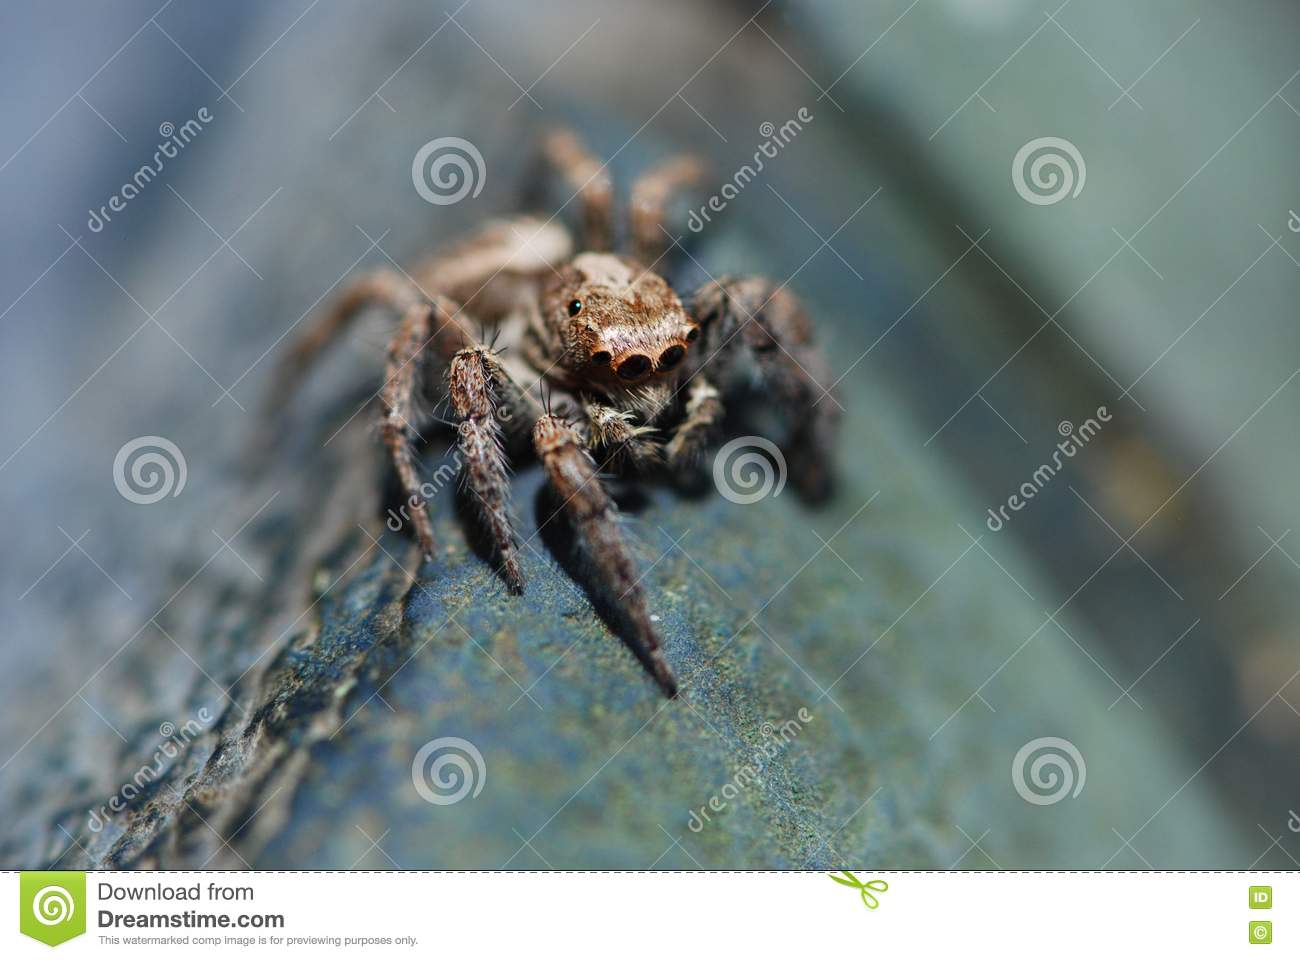 Jumping Spider Royalty Free Stock Photo - Image: 15823705 Jumping Spider Web